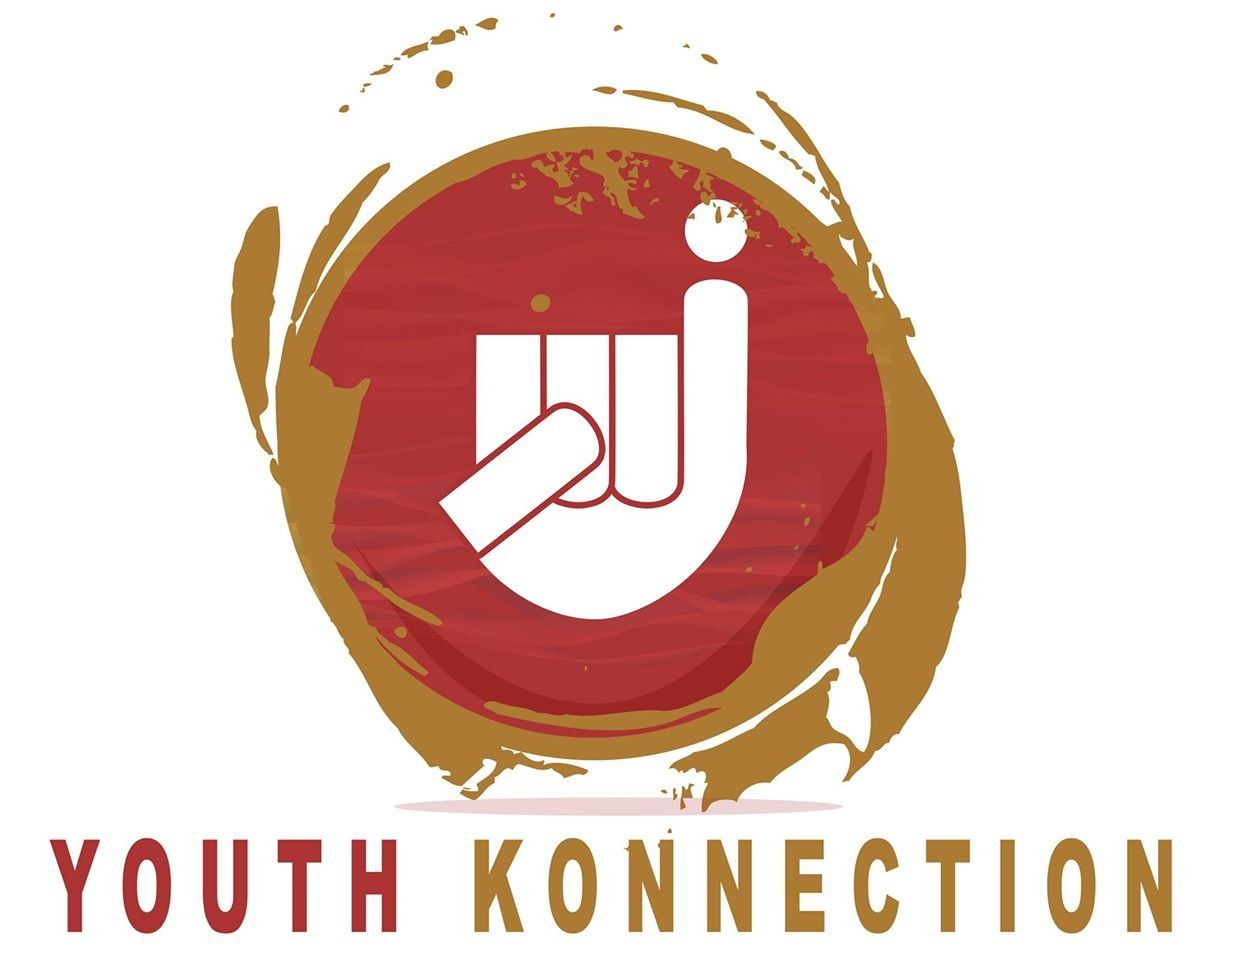 Youth Konnection will officially open its doors in 2015